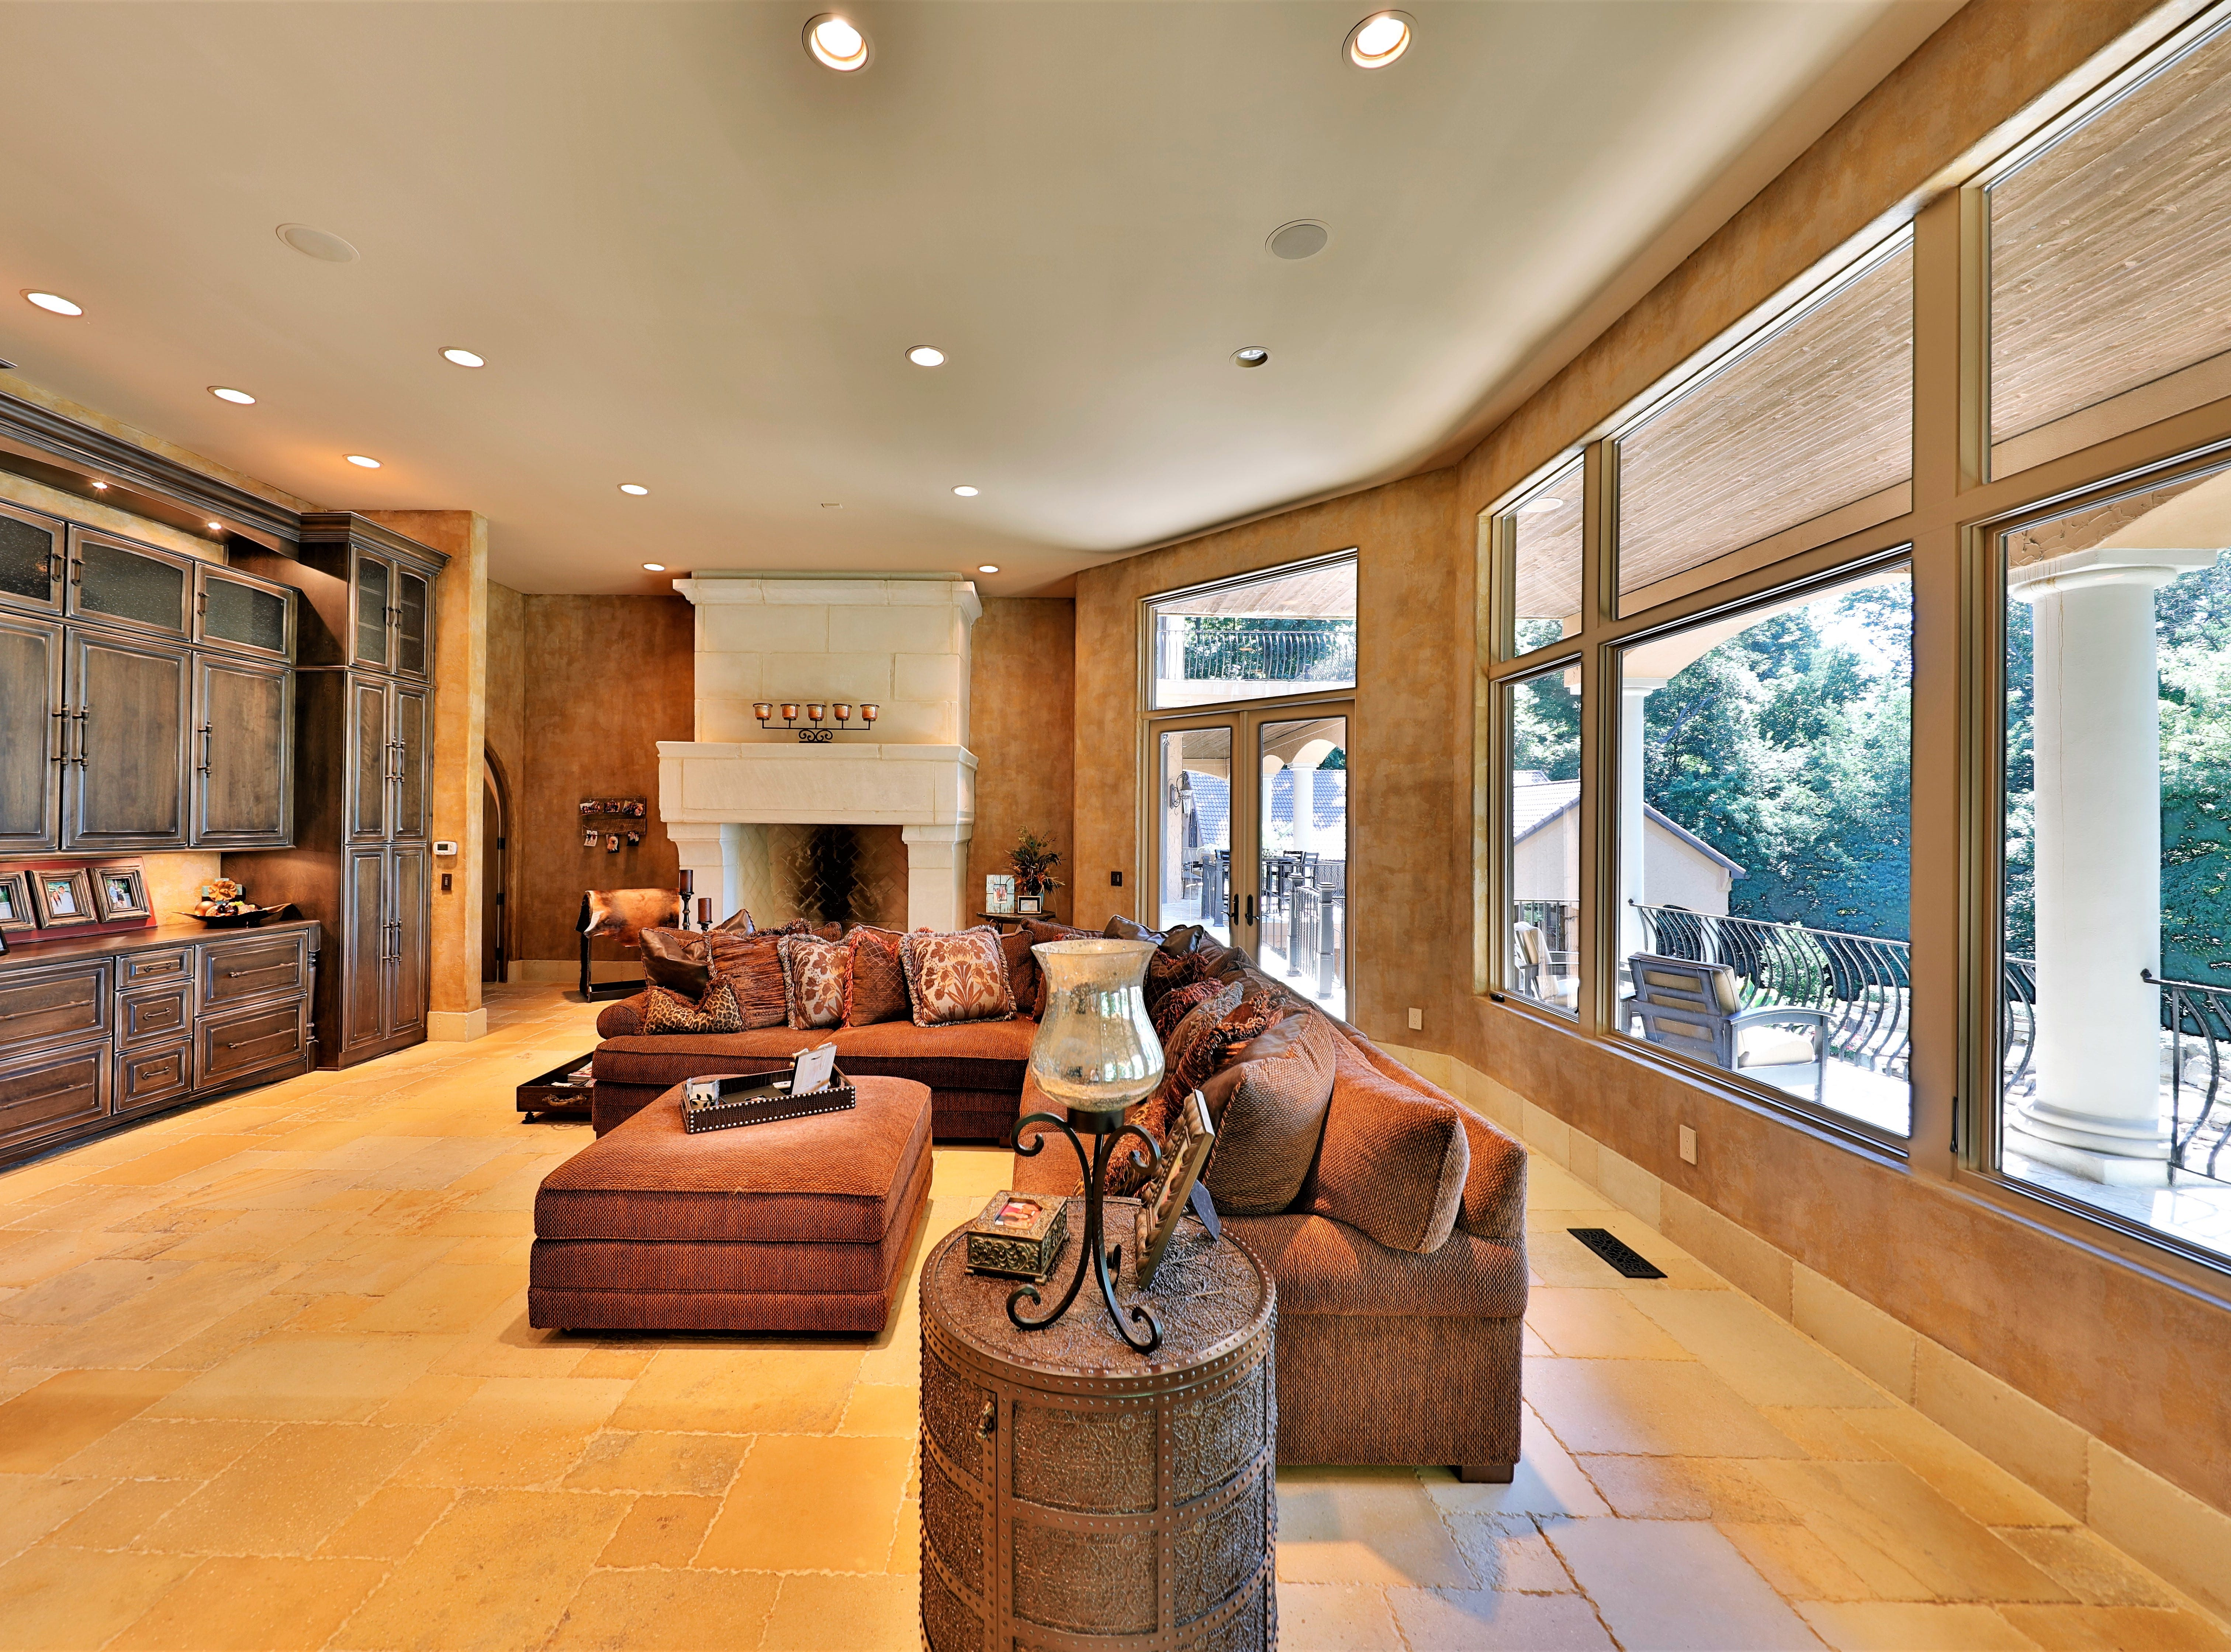 A family room on the main floor has another wood-burning fireplace and built-in storage.